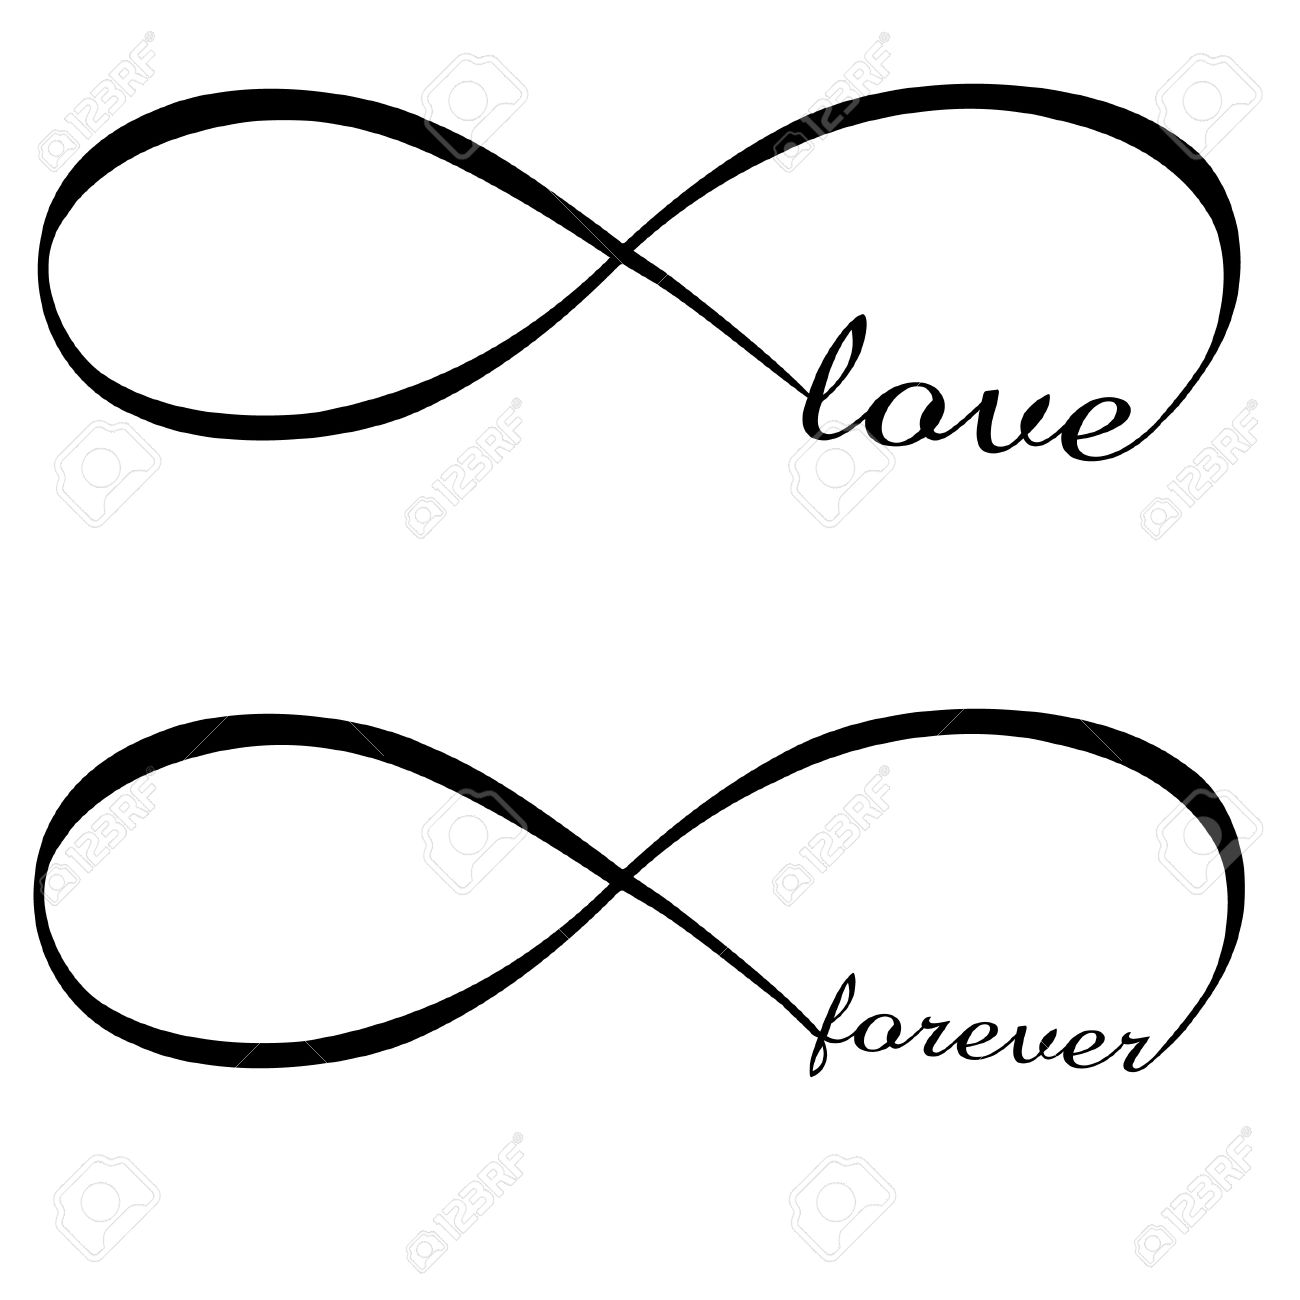 Infinite love forever royalty free cliparts vectors and stock infinite love forever stock vector 17583309 biocorpaavc Images